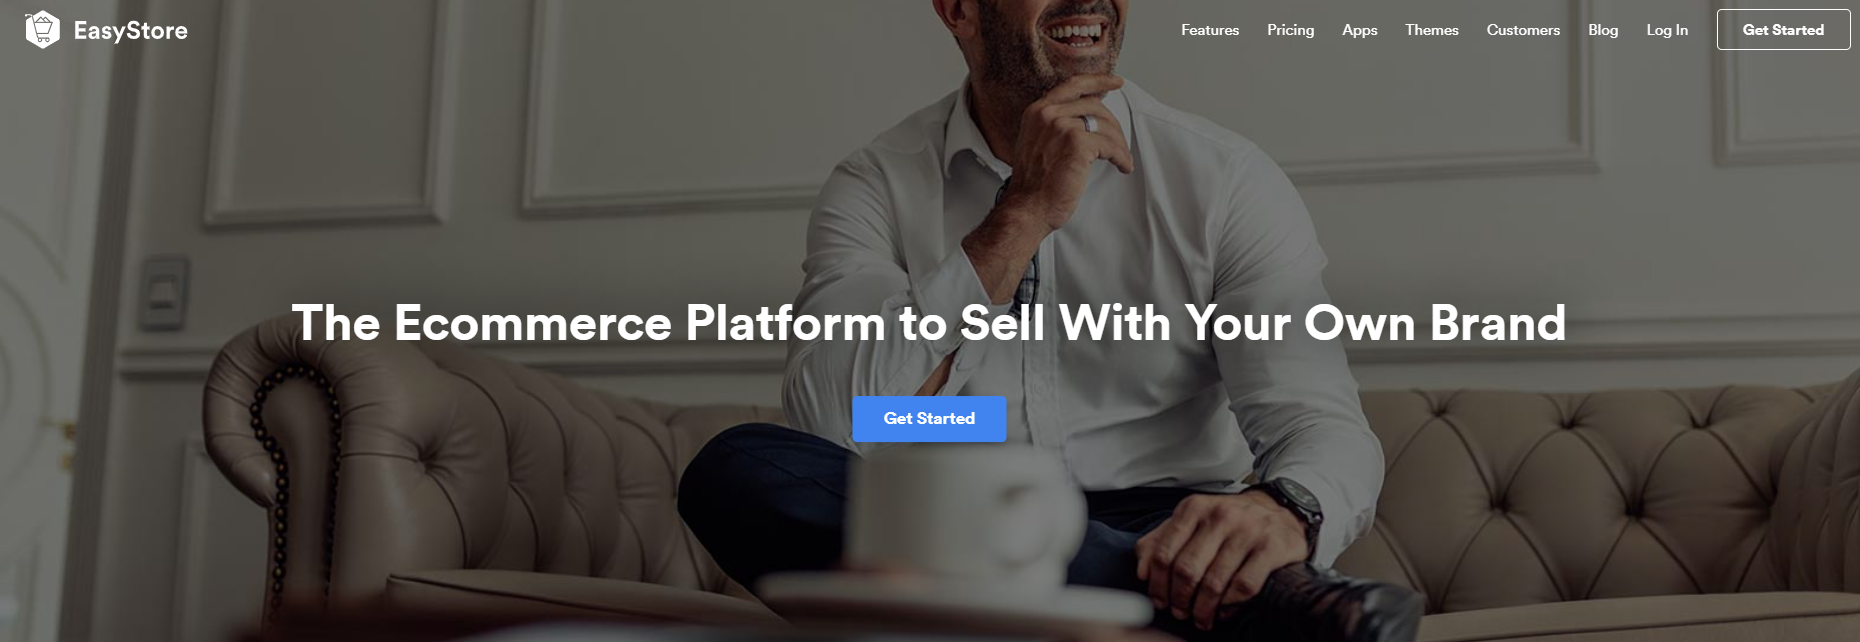 EasyStore Review With Discount Coupon Codes- Ecommerce Platform